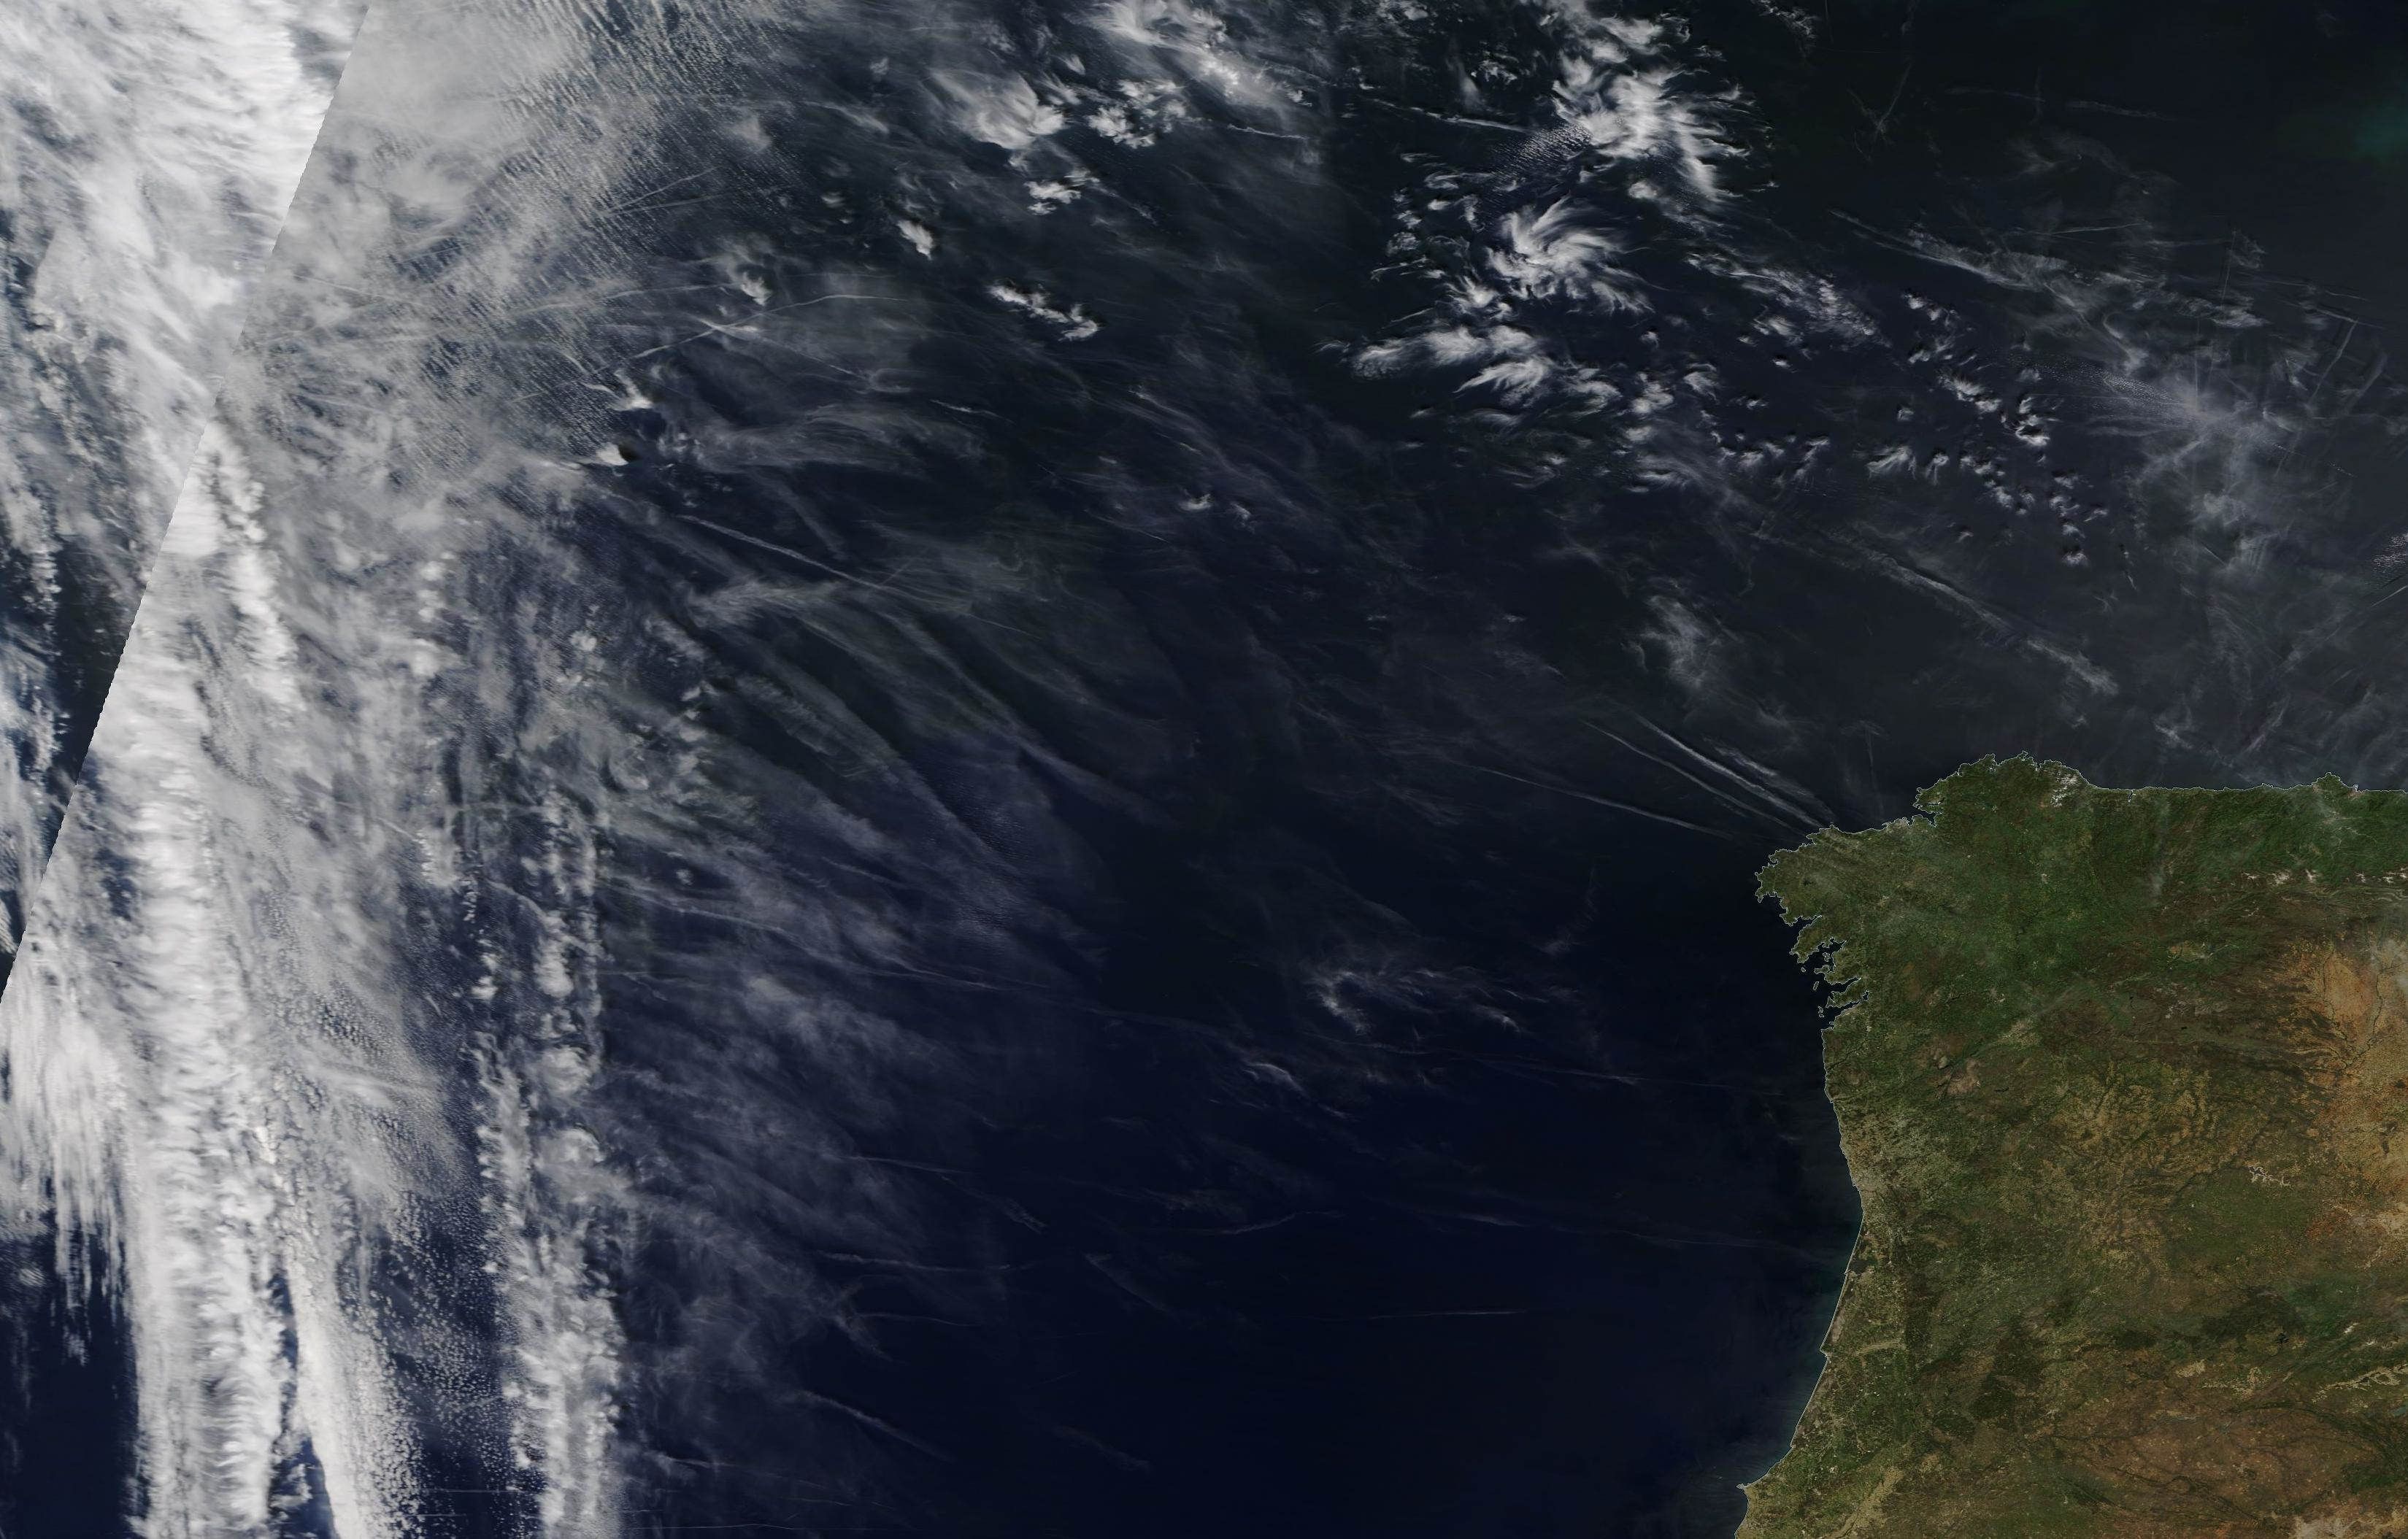 chemtrail geoengineering shipping area Trafalgar, Atlantic west of Spain and Portugal Sunday 12 May 2019 ...https://go.nasa.gov/2E75p39